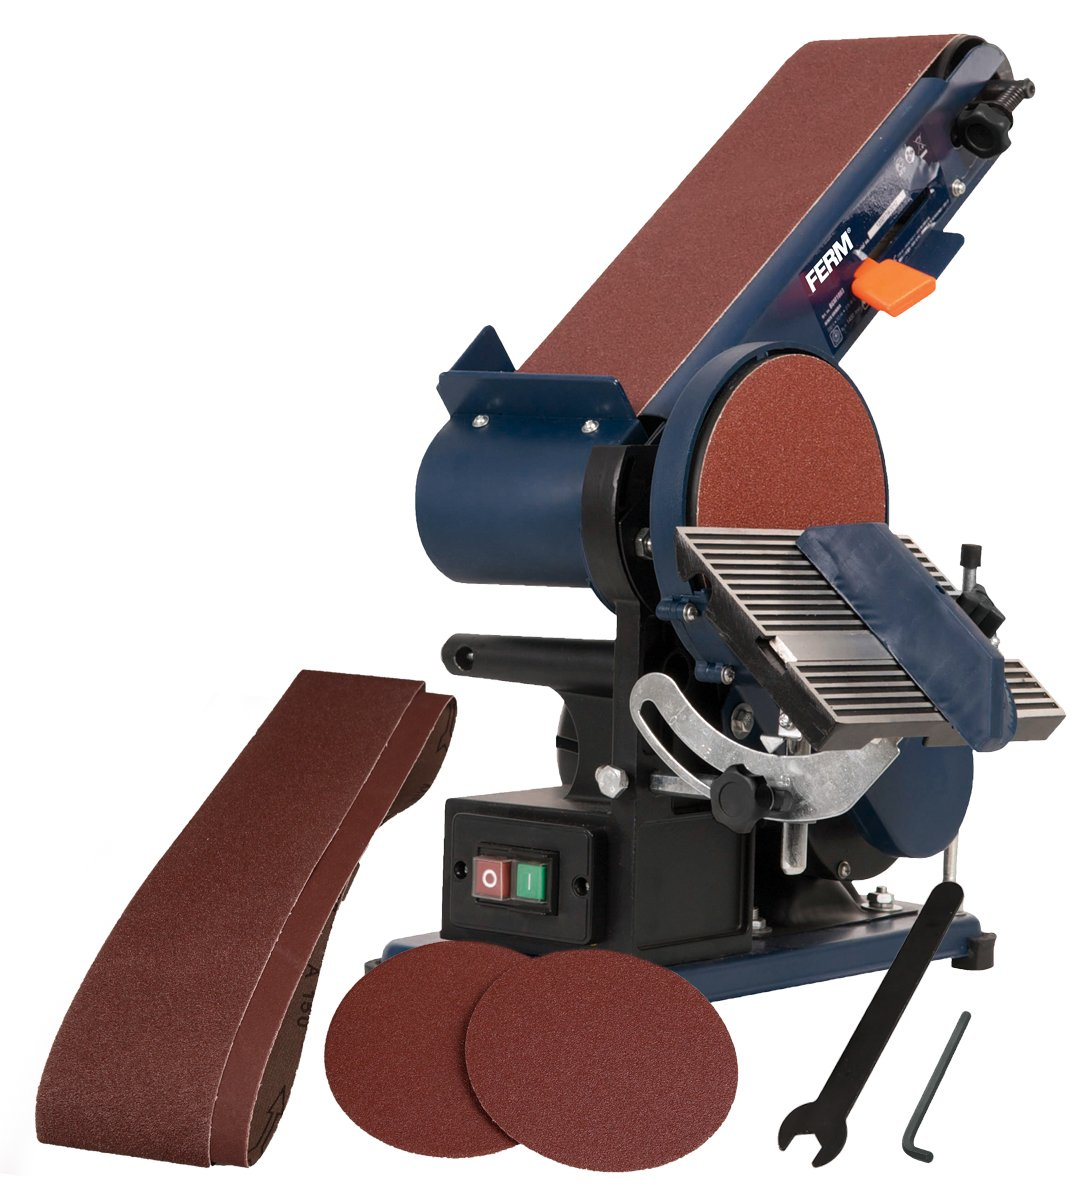 FERM Bench Sander - 375W - 150mm - Adjustable sanding belt - Angle Guide and Adjustable Working Table - With 2 Sanding Belts (P80&P120) and 2 Sanding Discs (P80&P120) BGM1003